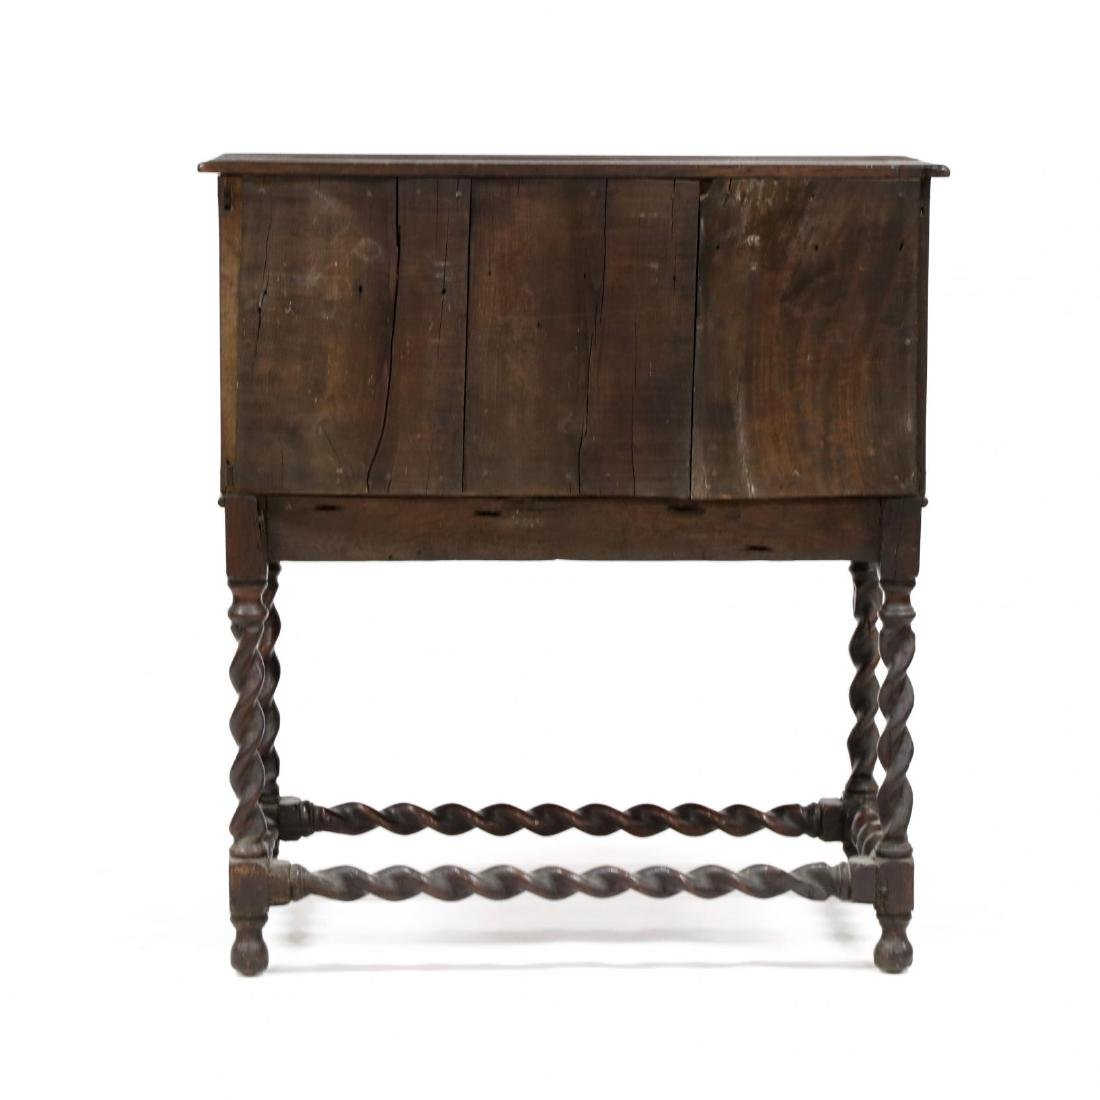 William and Mary Style Inlaid Cabinet on Stand - 5